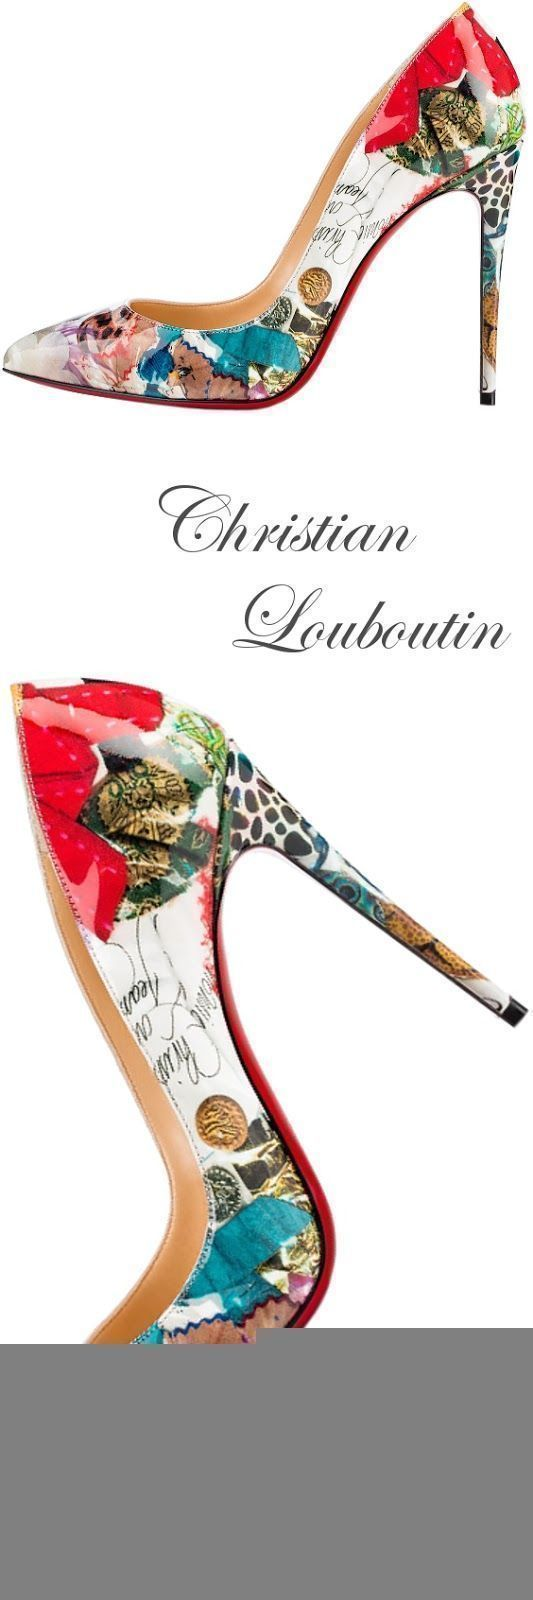 Brilliant Luxury ♦ Christian Louboutin Pigalle Follies Mens New Years Eve Outfit #charlotteolympiaheelschristianlouboutin #brianatwood2017 #christianlouboutin2017 #christianlouboutinoutfits #luxuryoutfits